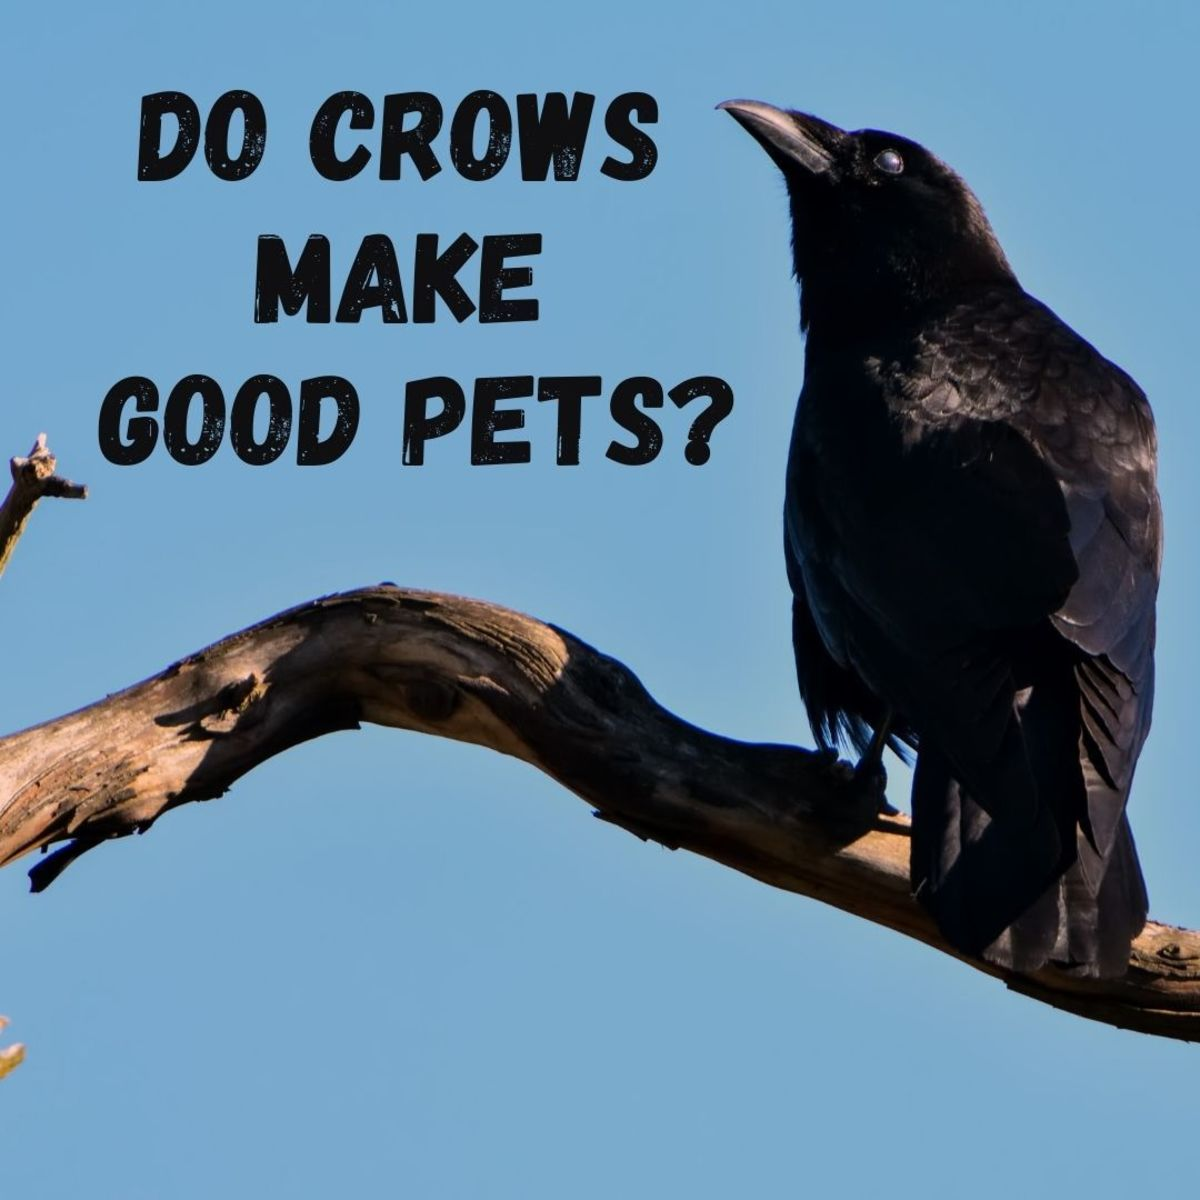 Crows as Pets: Is It Legal to Have a Pet Crow?